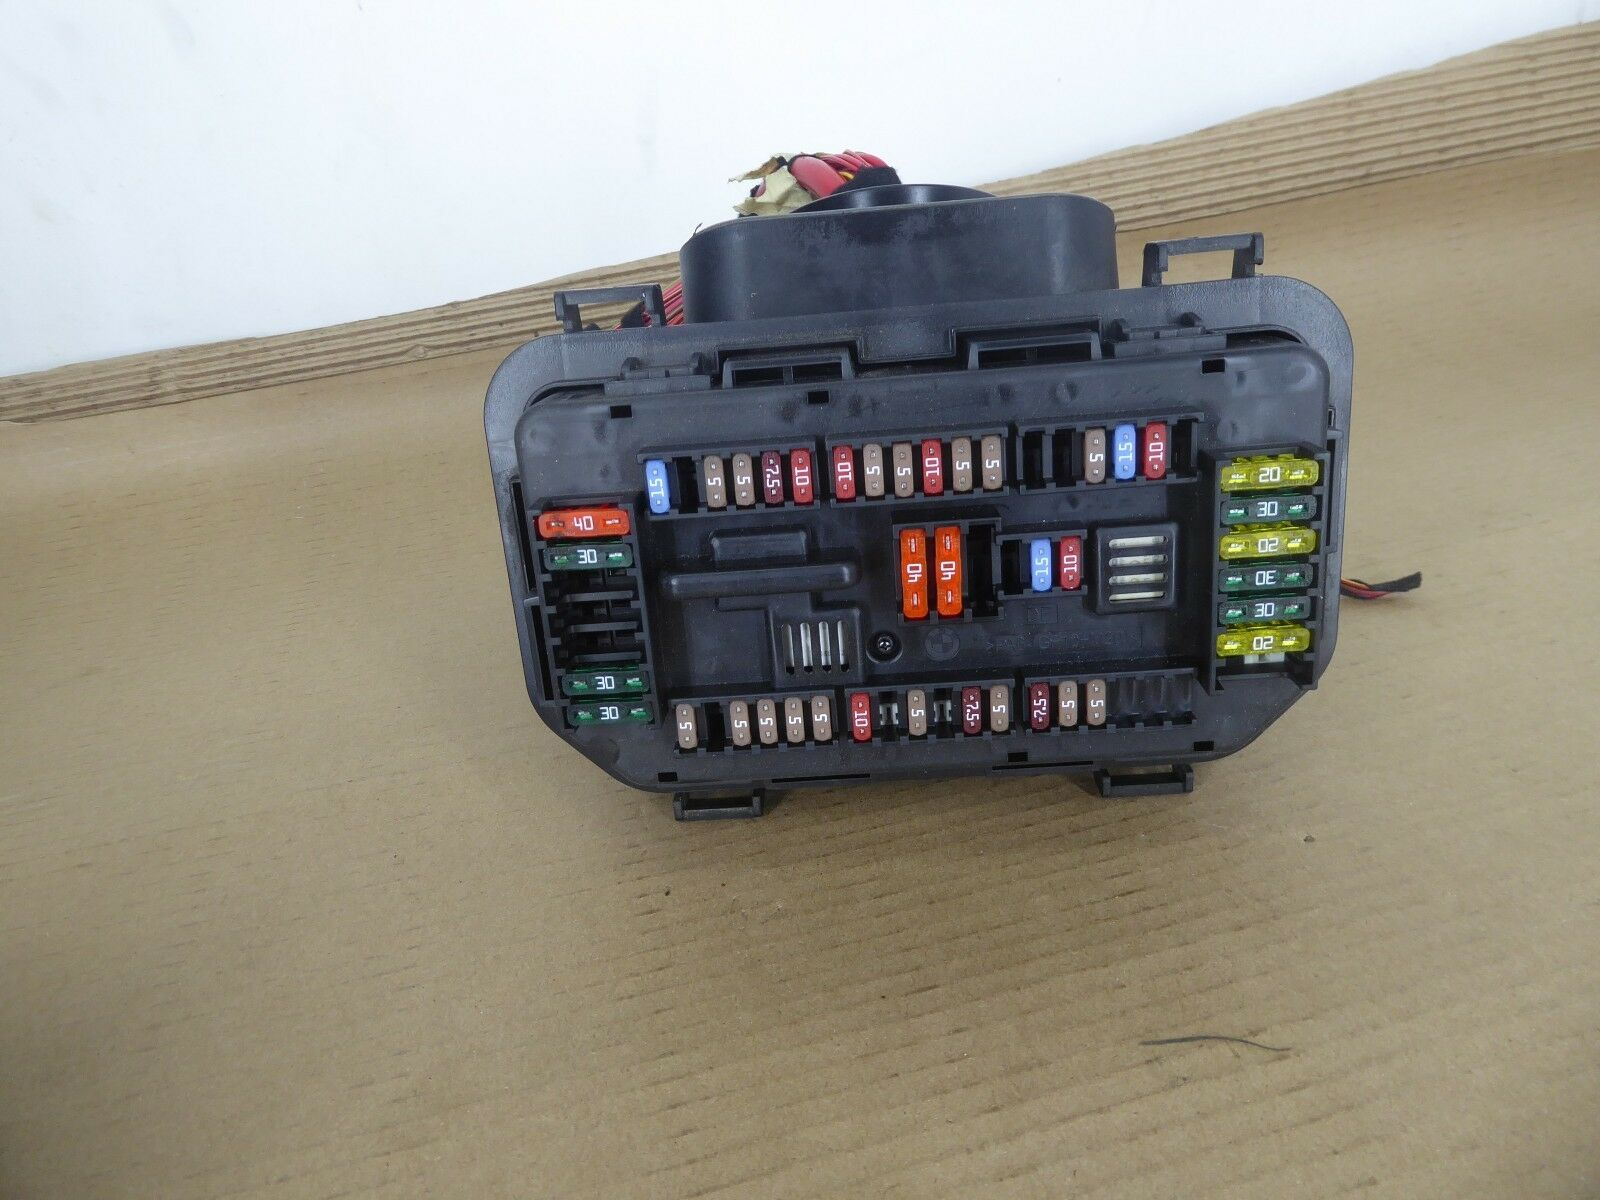 Used Bmw Electric Vehicle Parts For Sale Page 9 F32 Fuse Box F22 F30 F31 Power Distribution Oem 61149224872